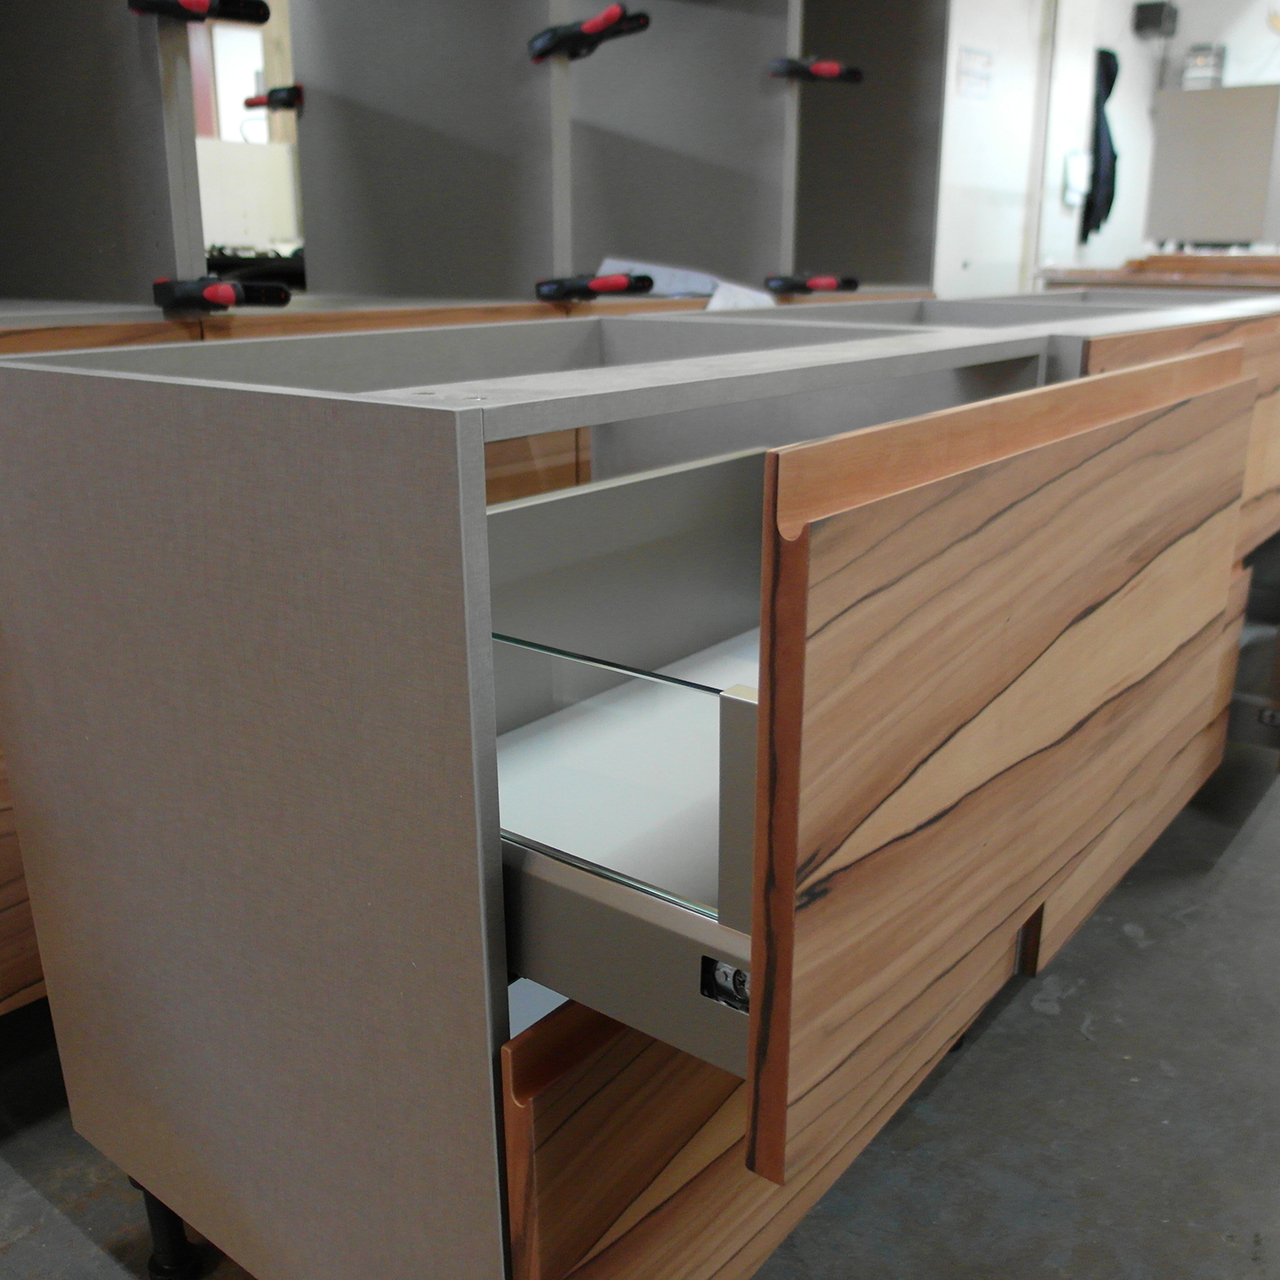 Bespoke kitchens birmingham get a free quote for Bespoke kitchens